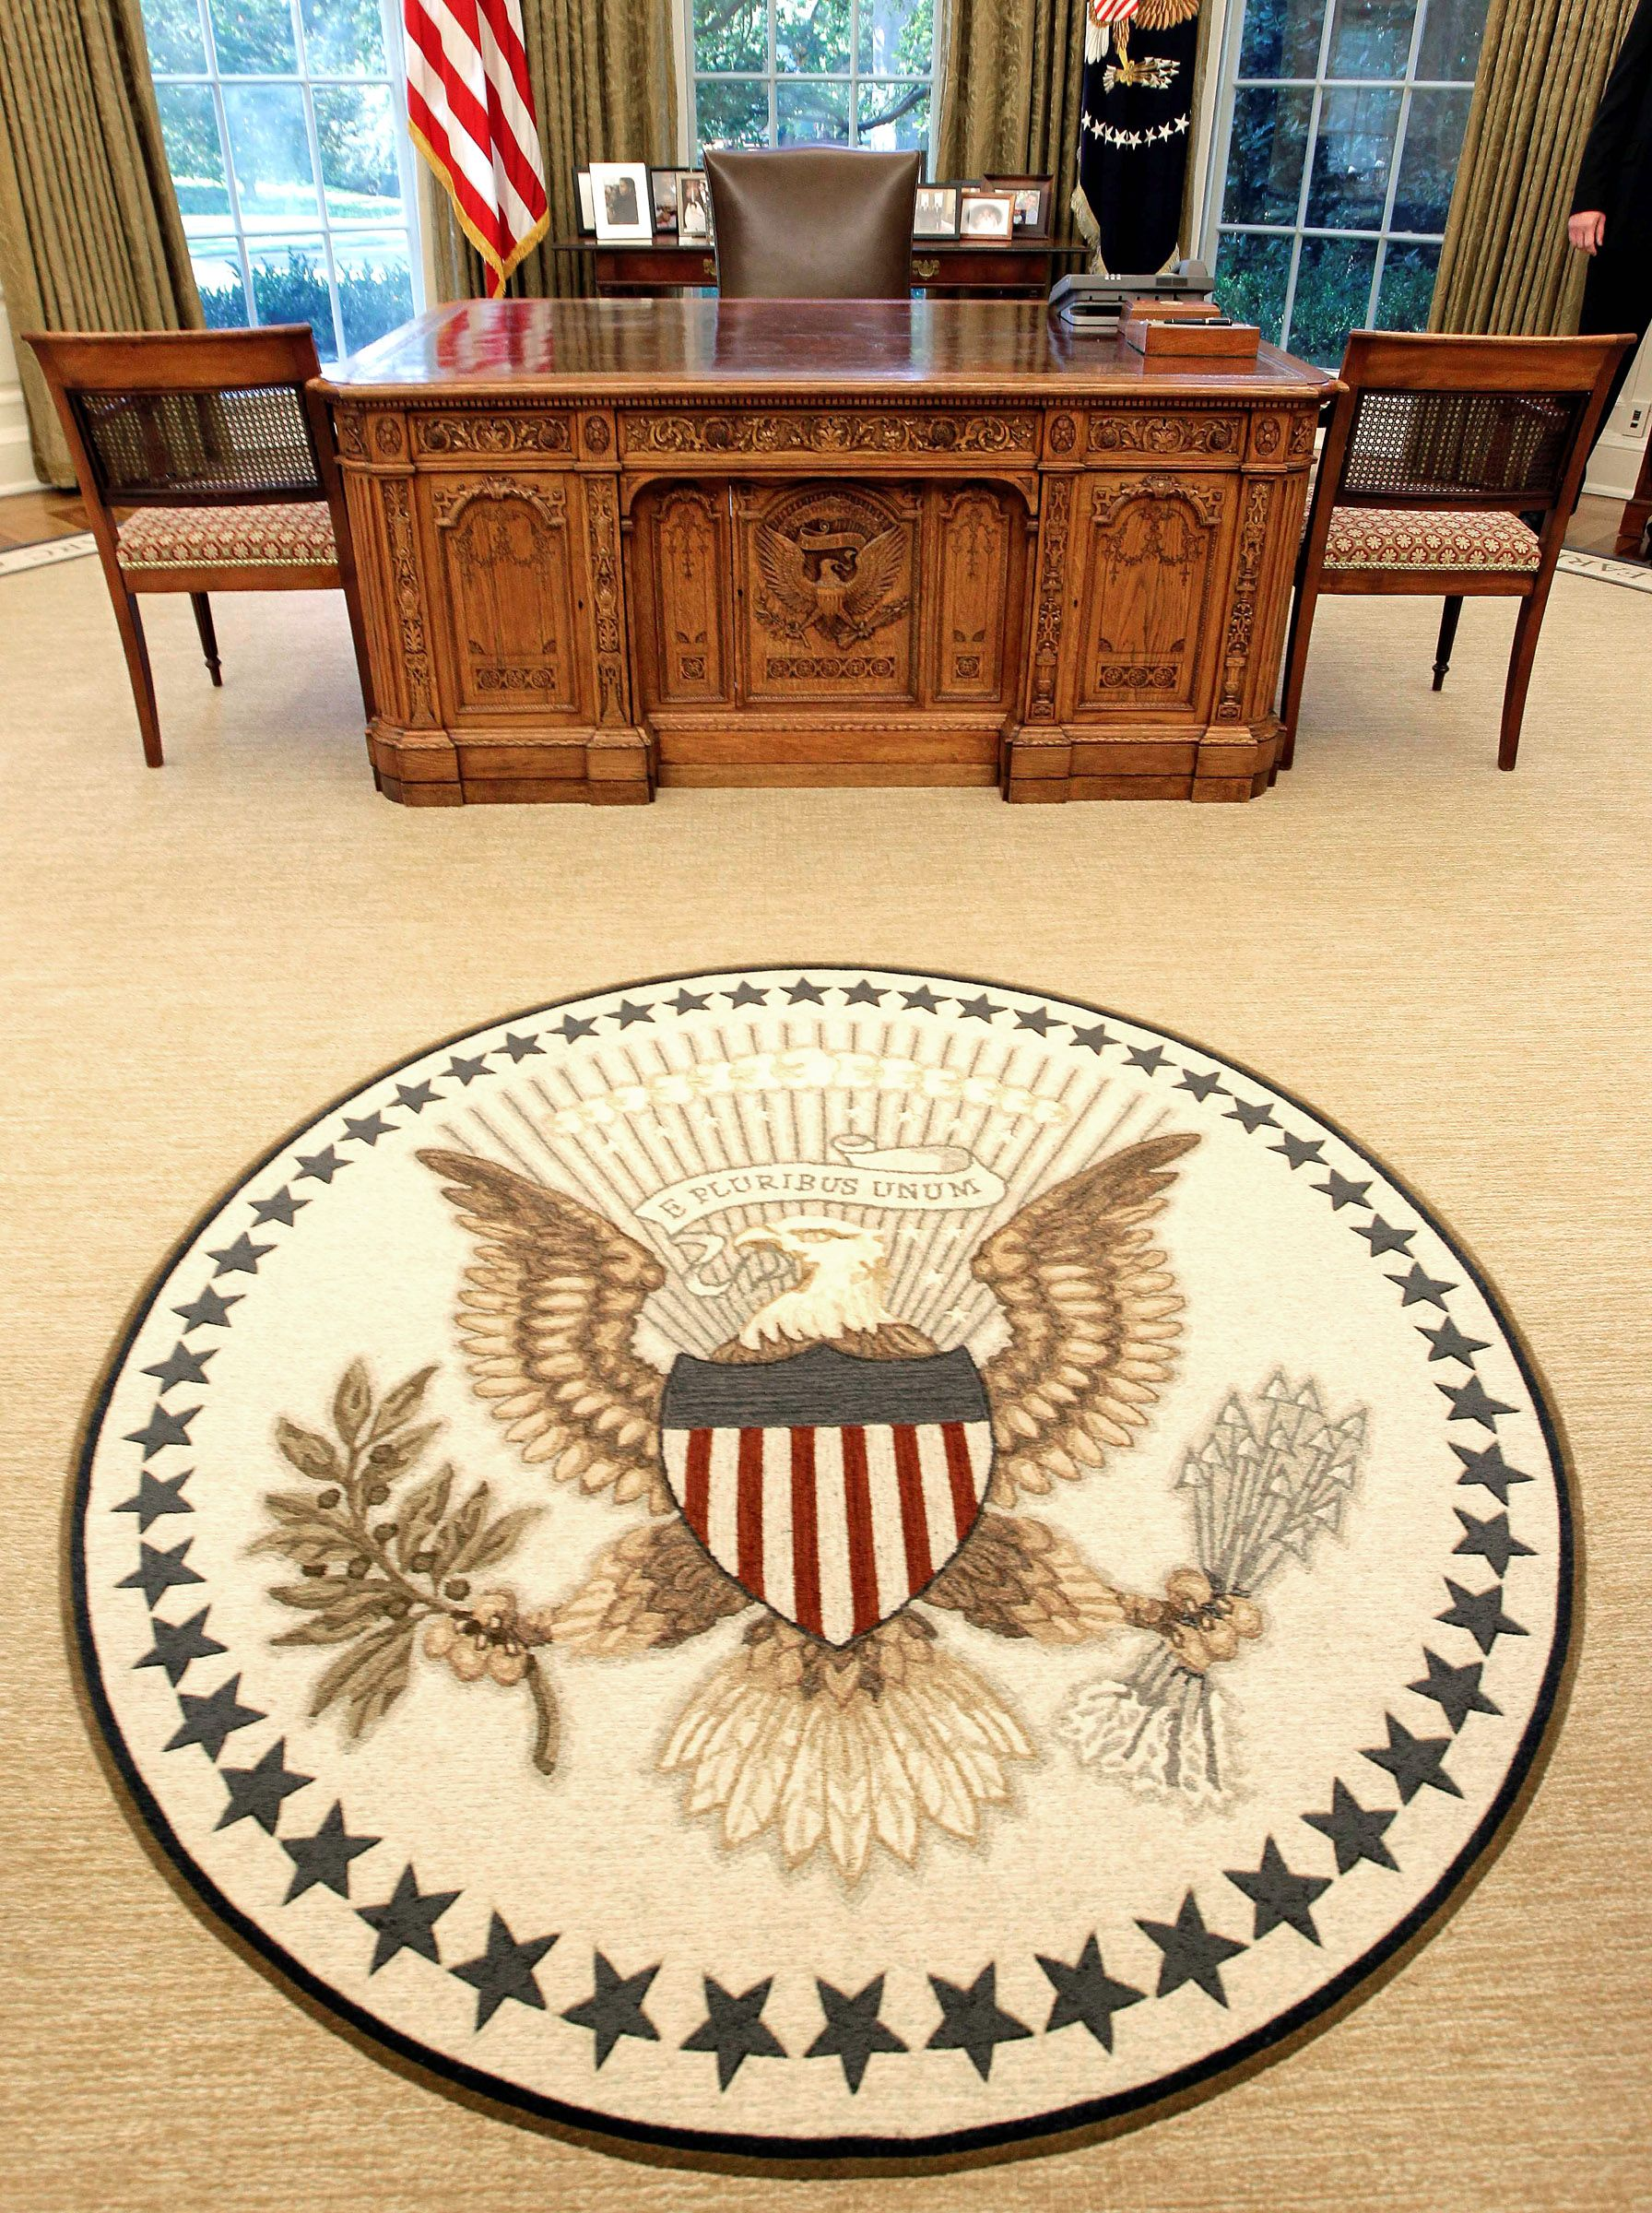 Oval office rugs